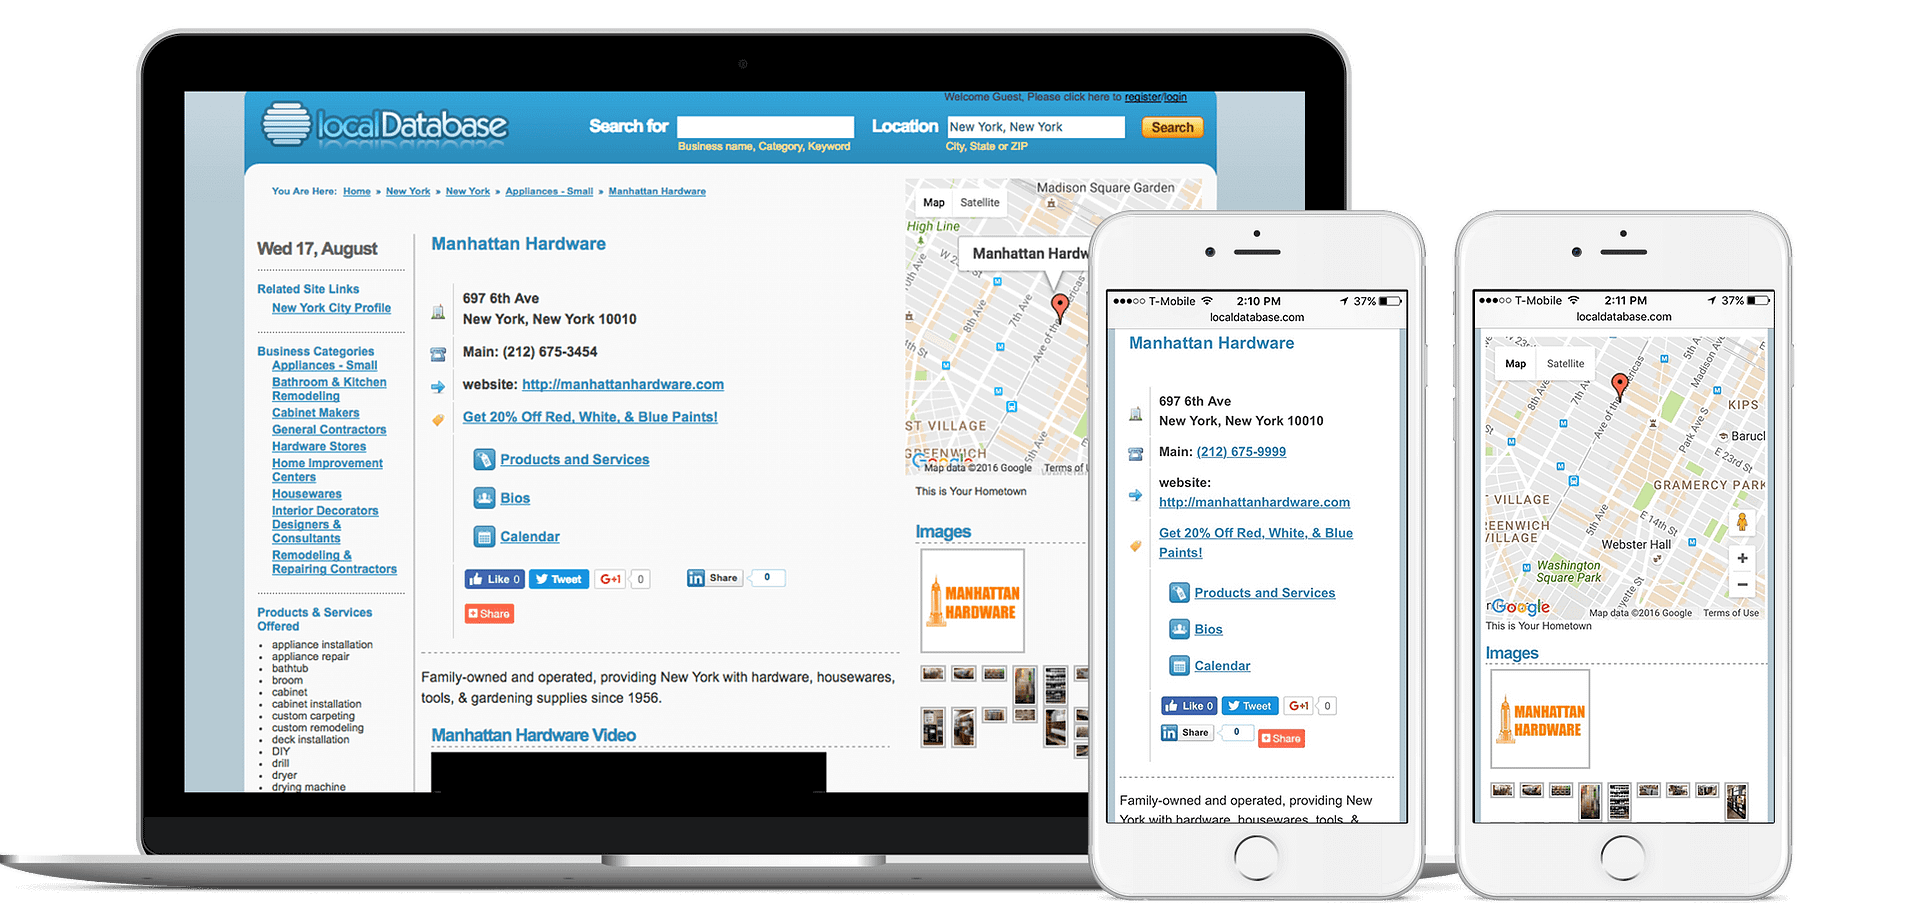 Add Your Business to Local Database